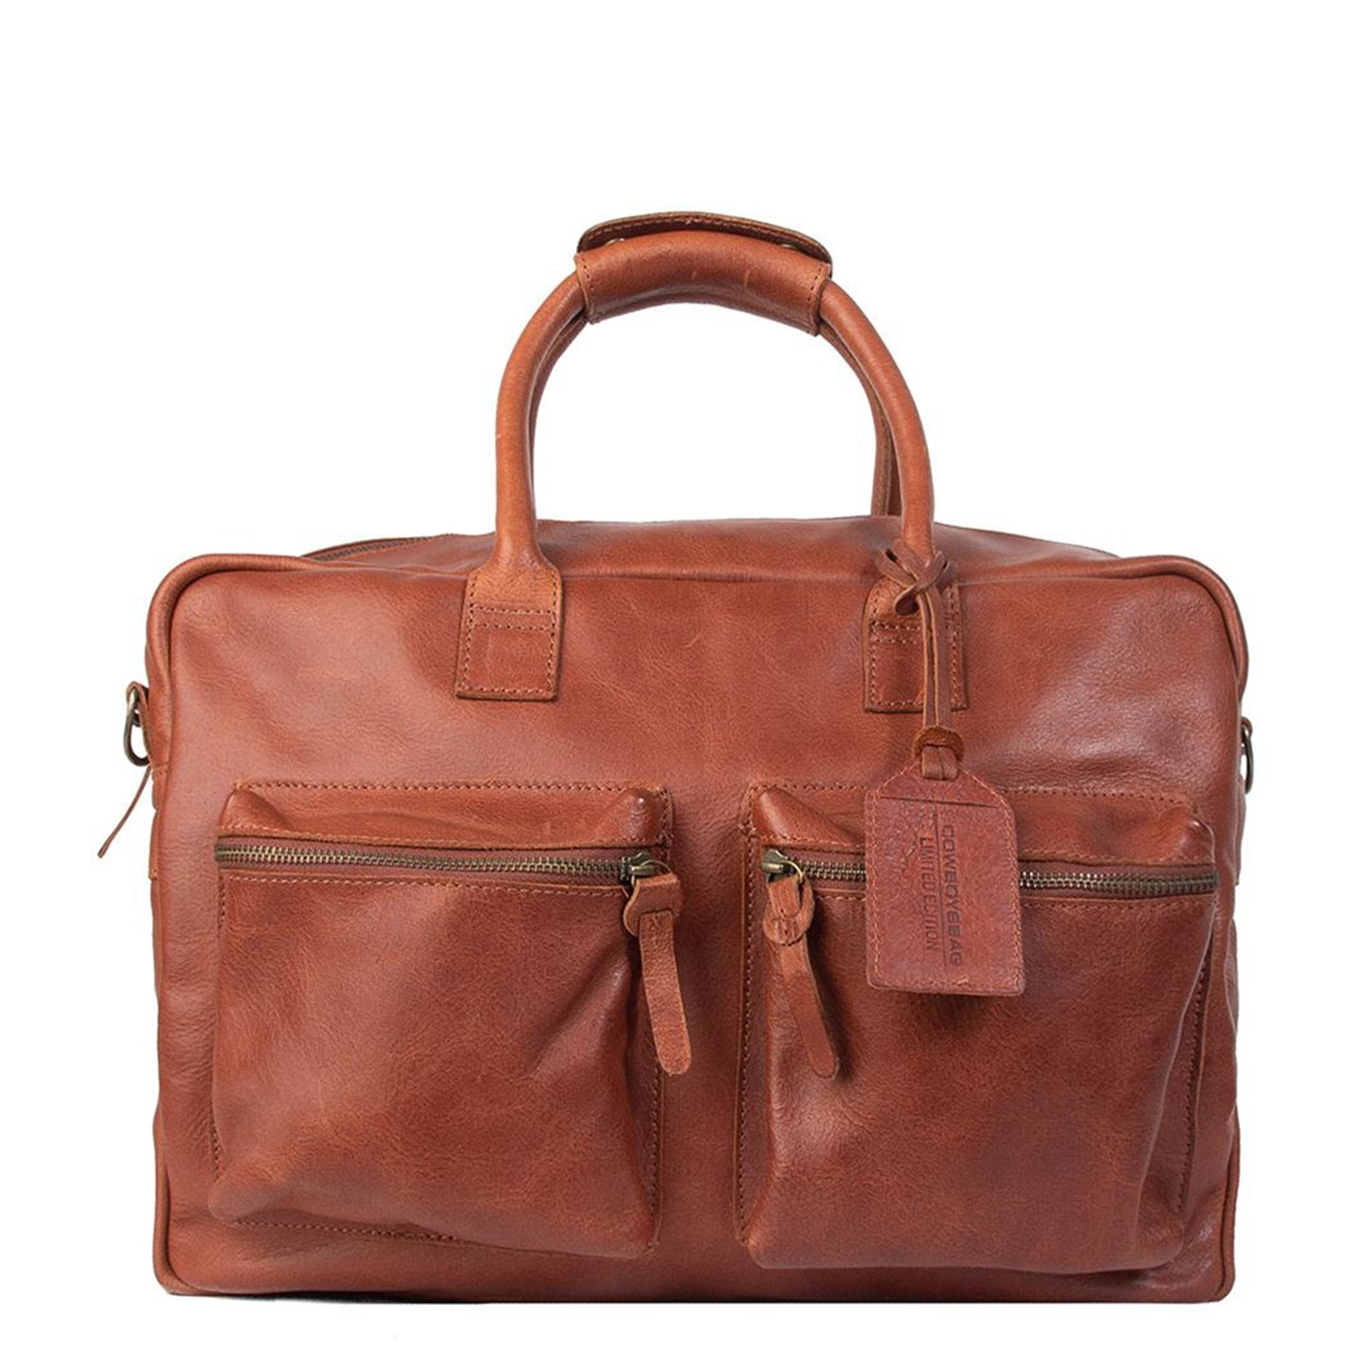 Cowboysbag The Bag Special Schoudertas oak - 1